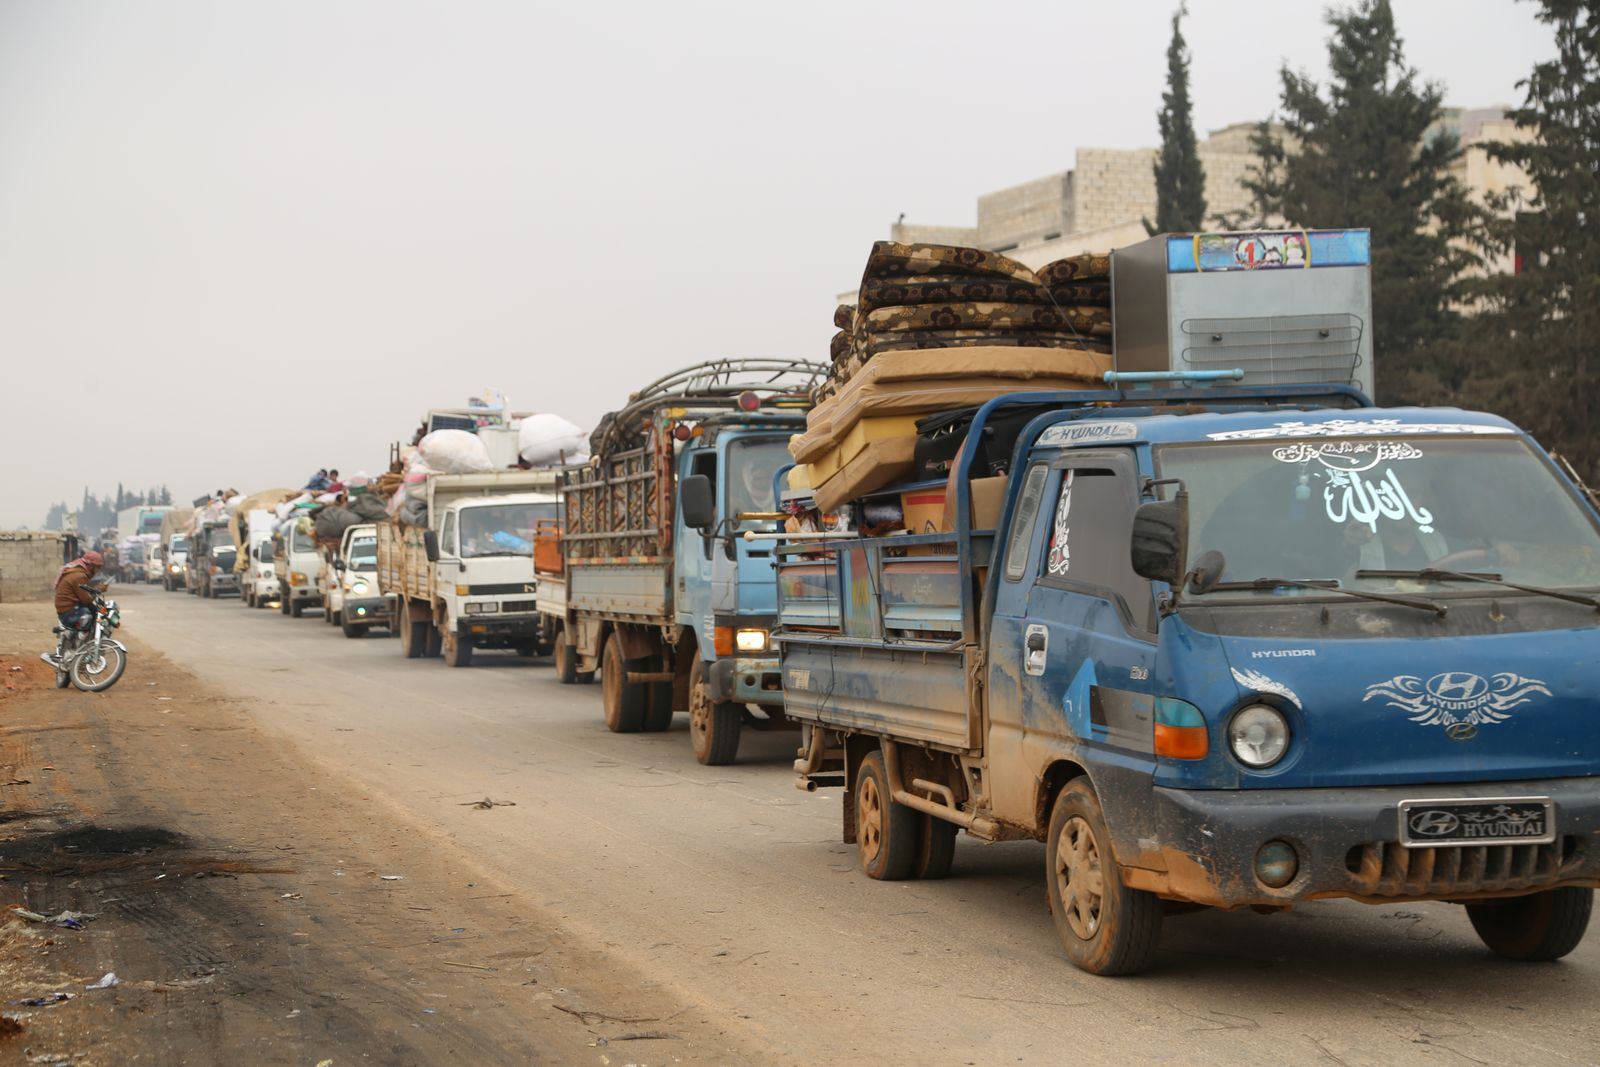 SYRIA-SECURITY/DISPLACED